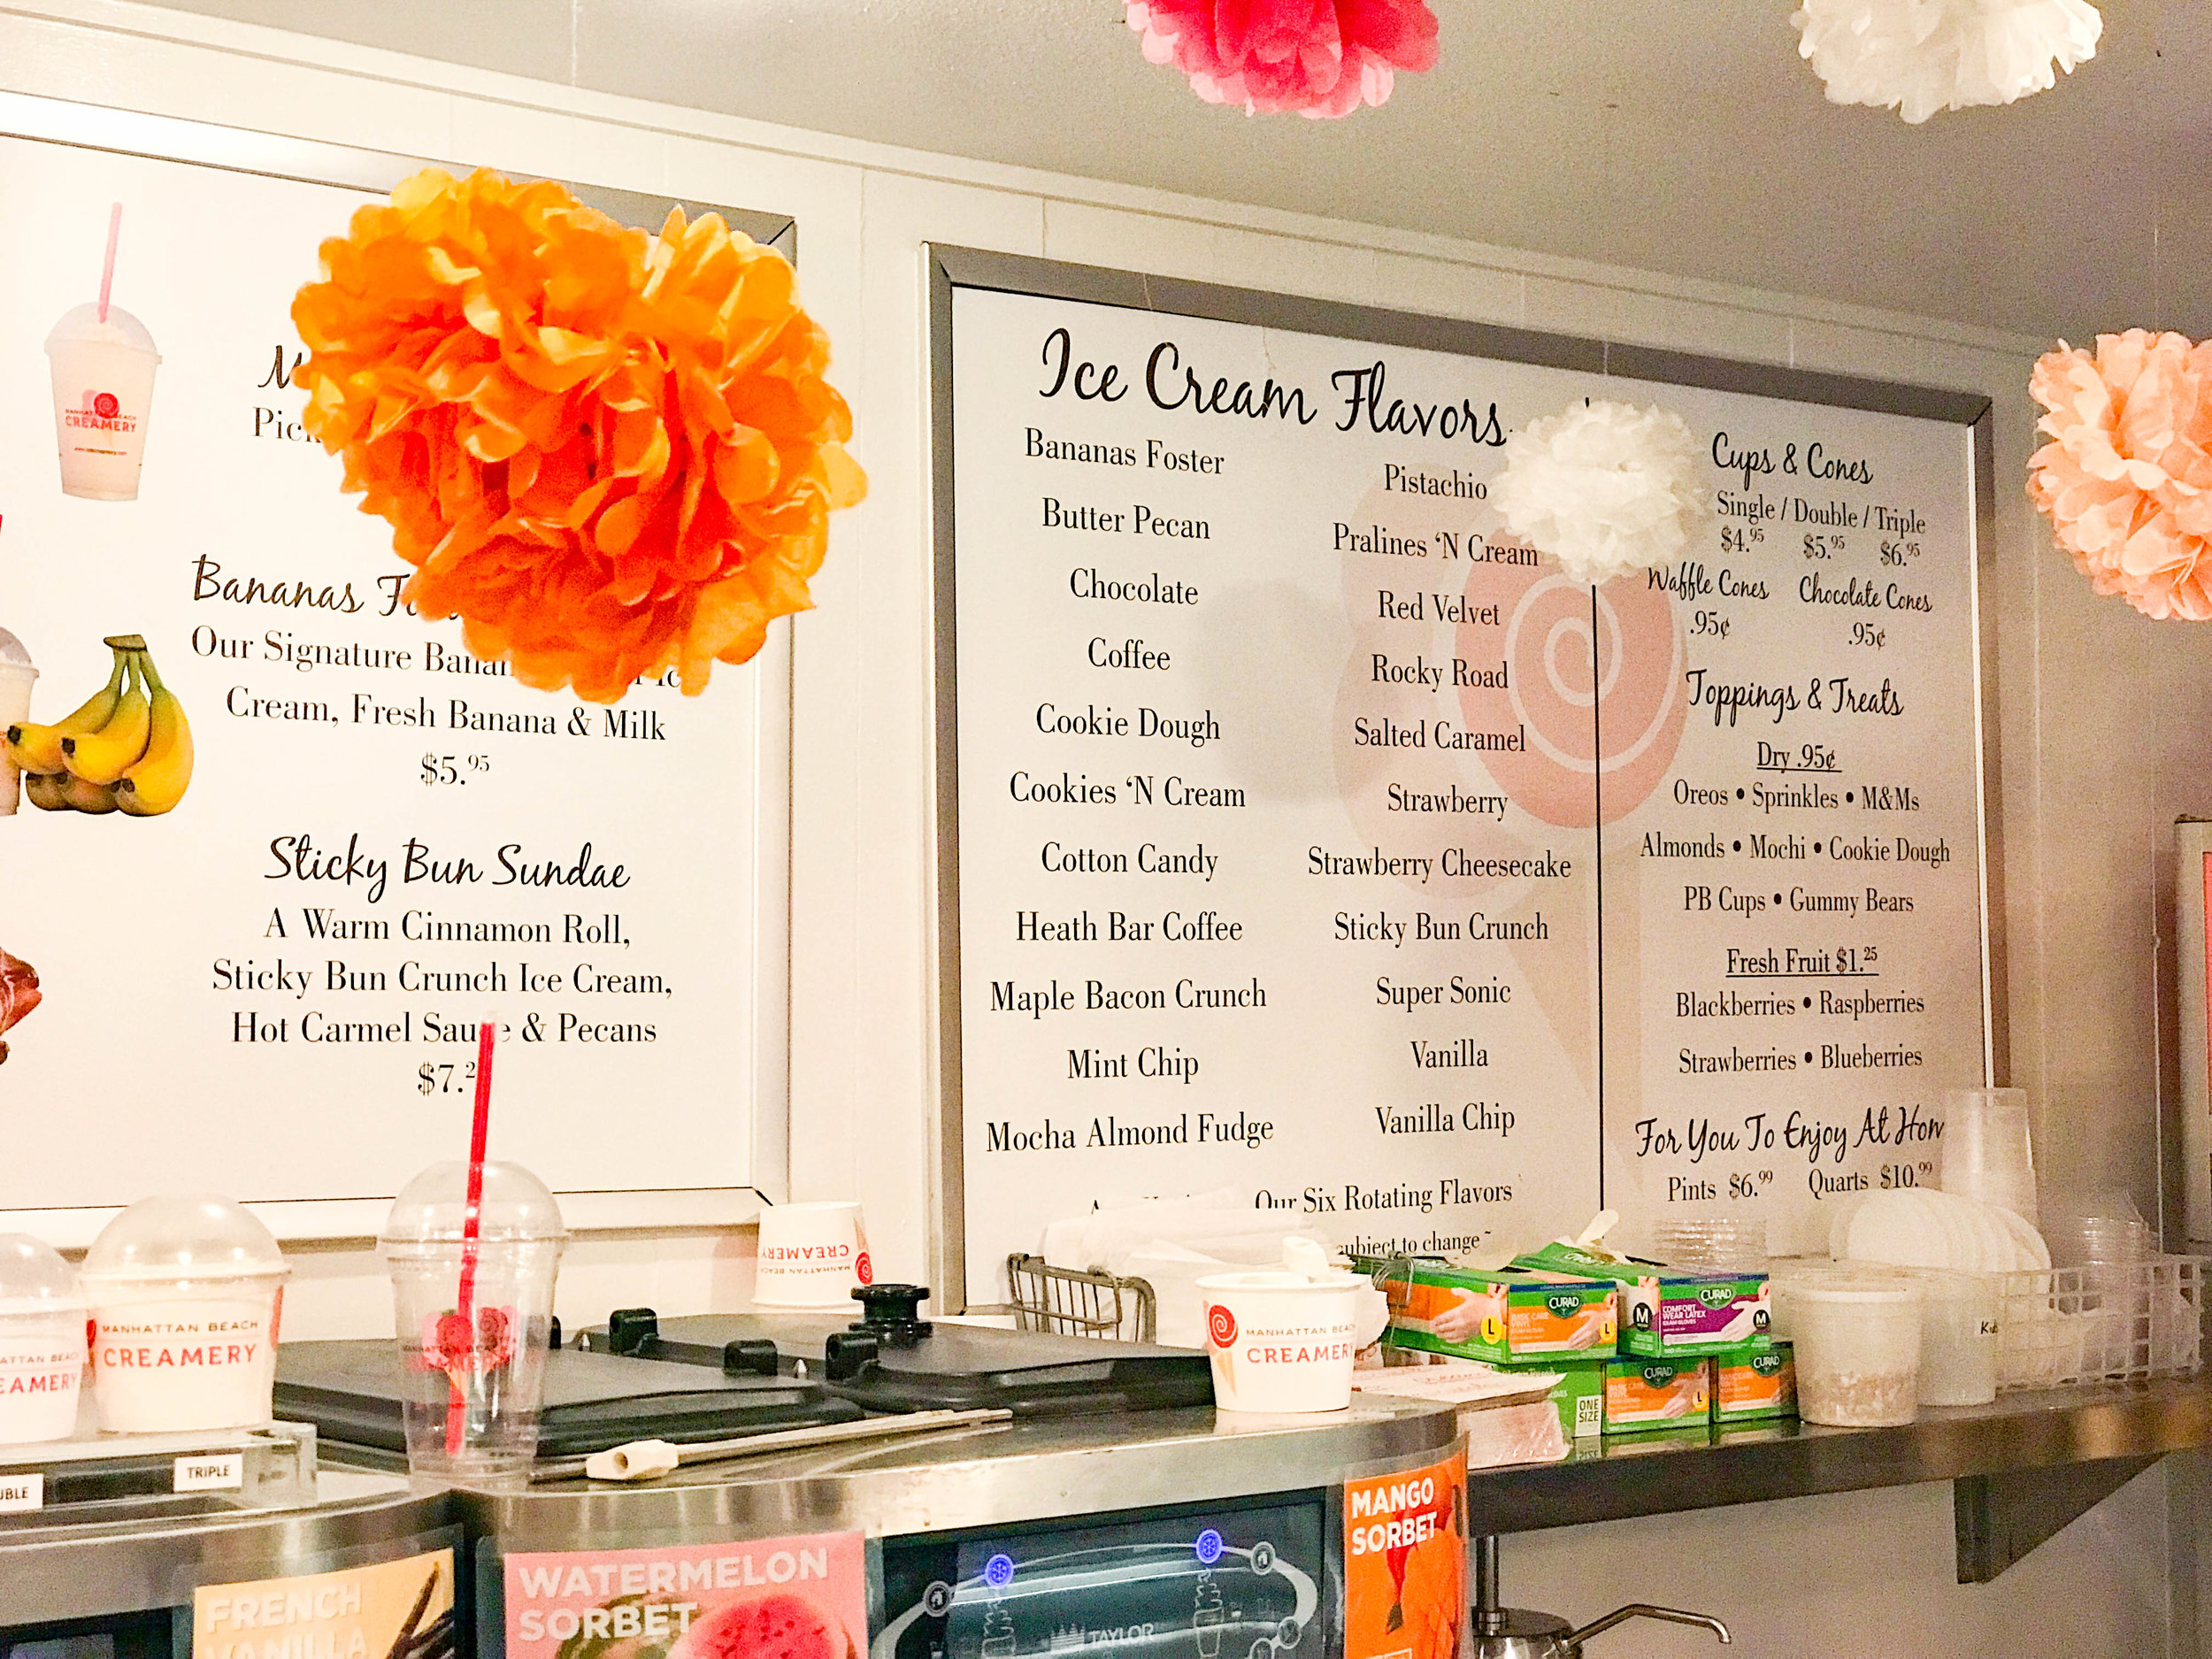 Manhattan Beach Creamery Ice Cream Flavors Menu